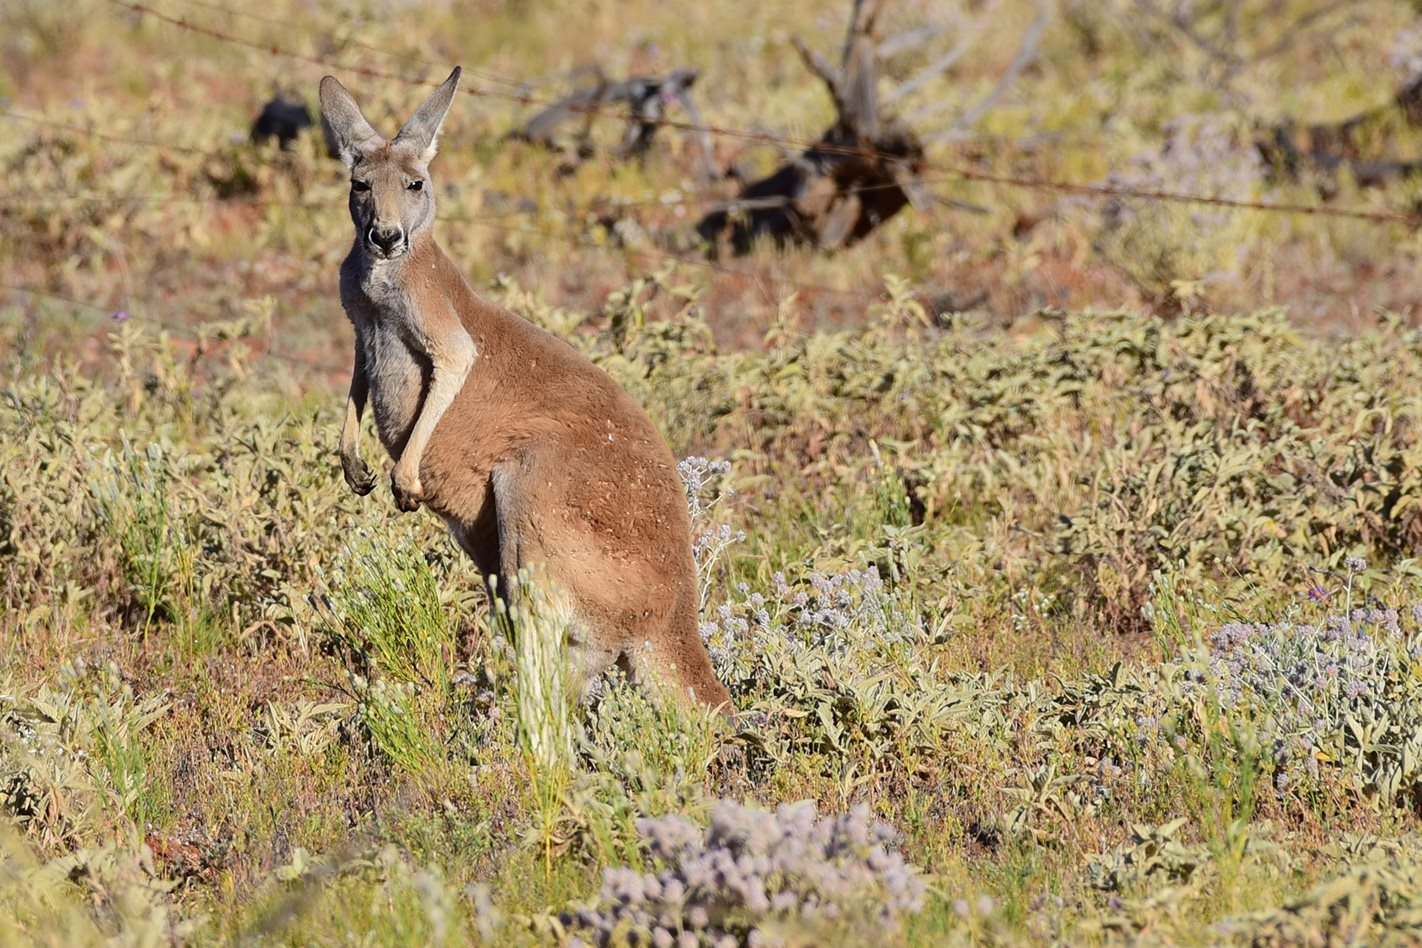 Red Kangaroos Darling River NSW.jpg